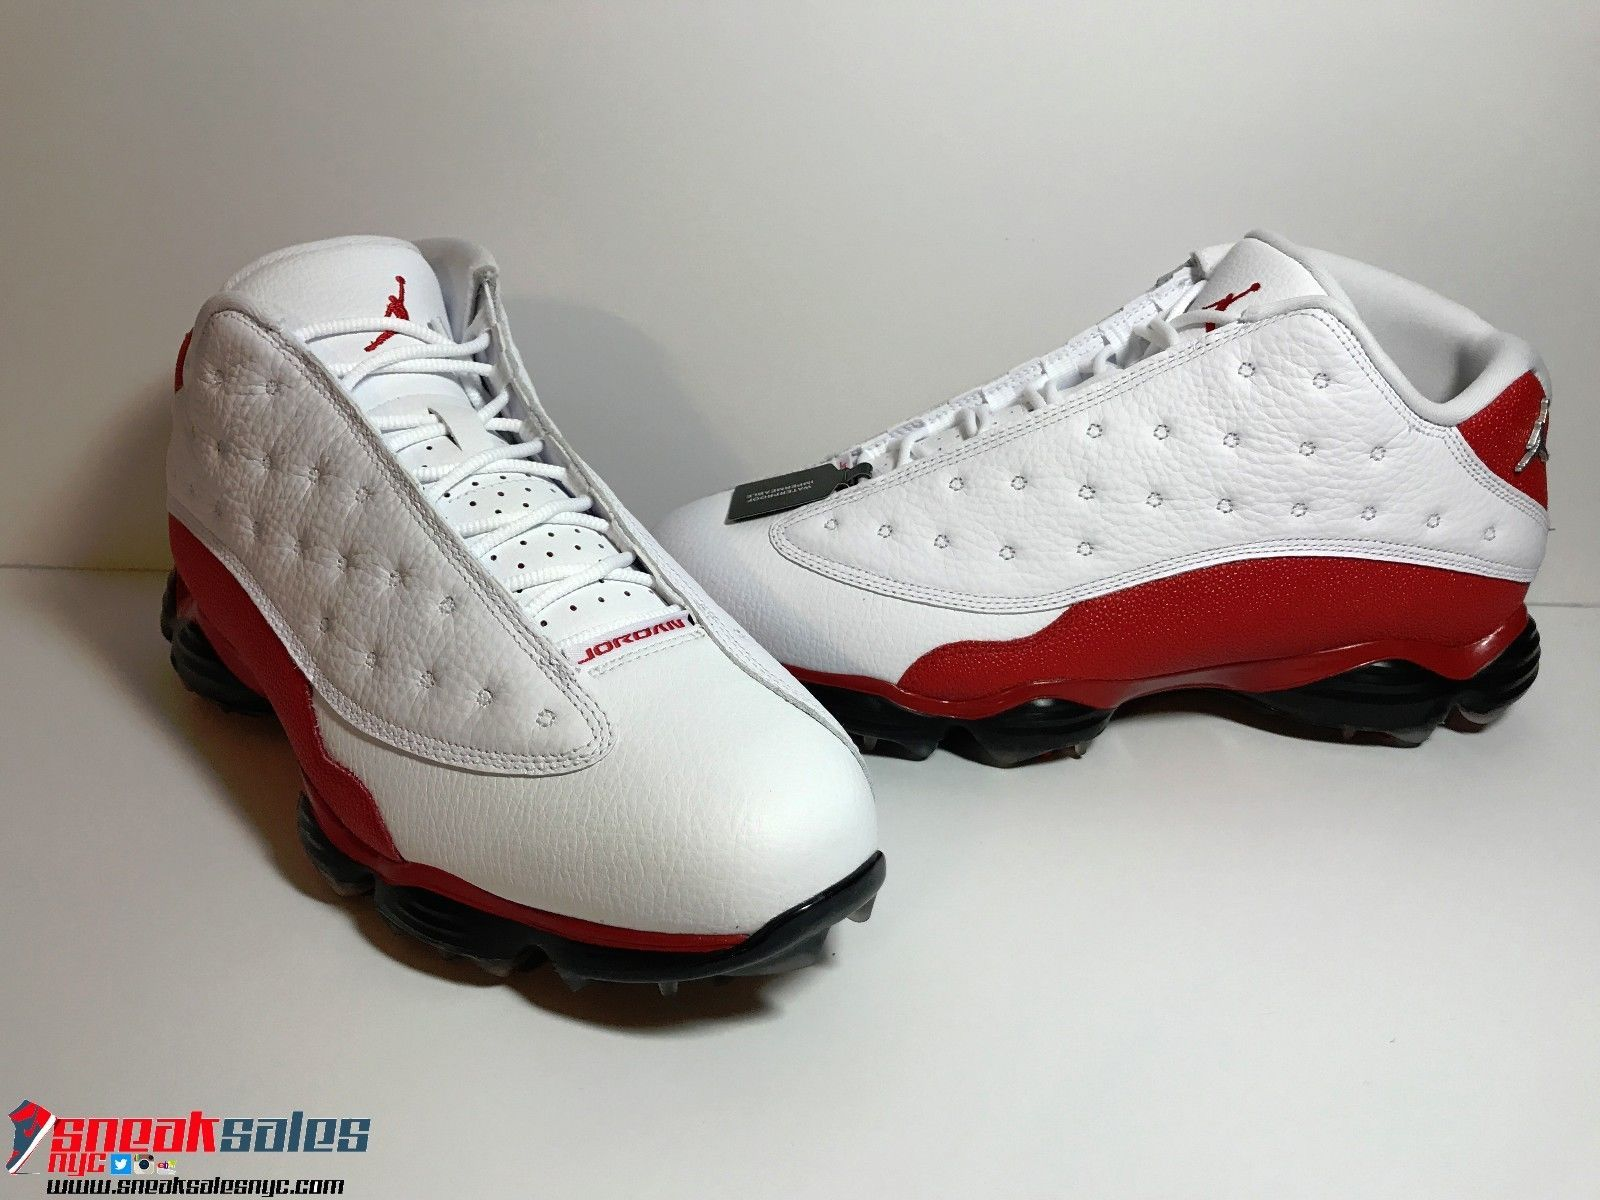 Nike Air Jordan 13 Golf Shoes Cleats White Red Retro Low 9.5 10 10.5 11.5  New